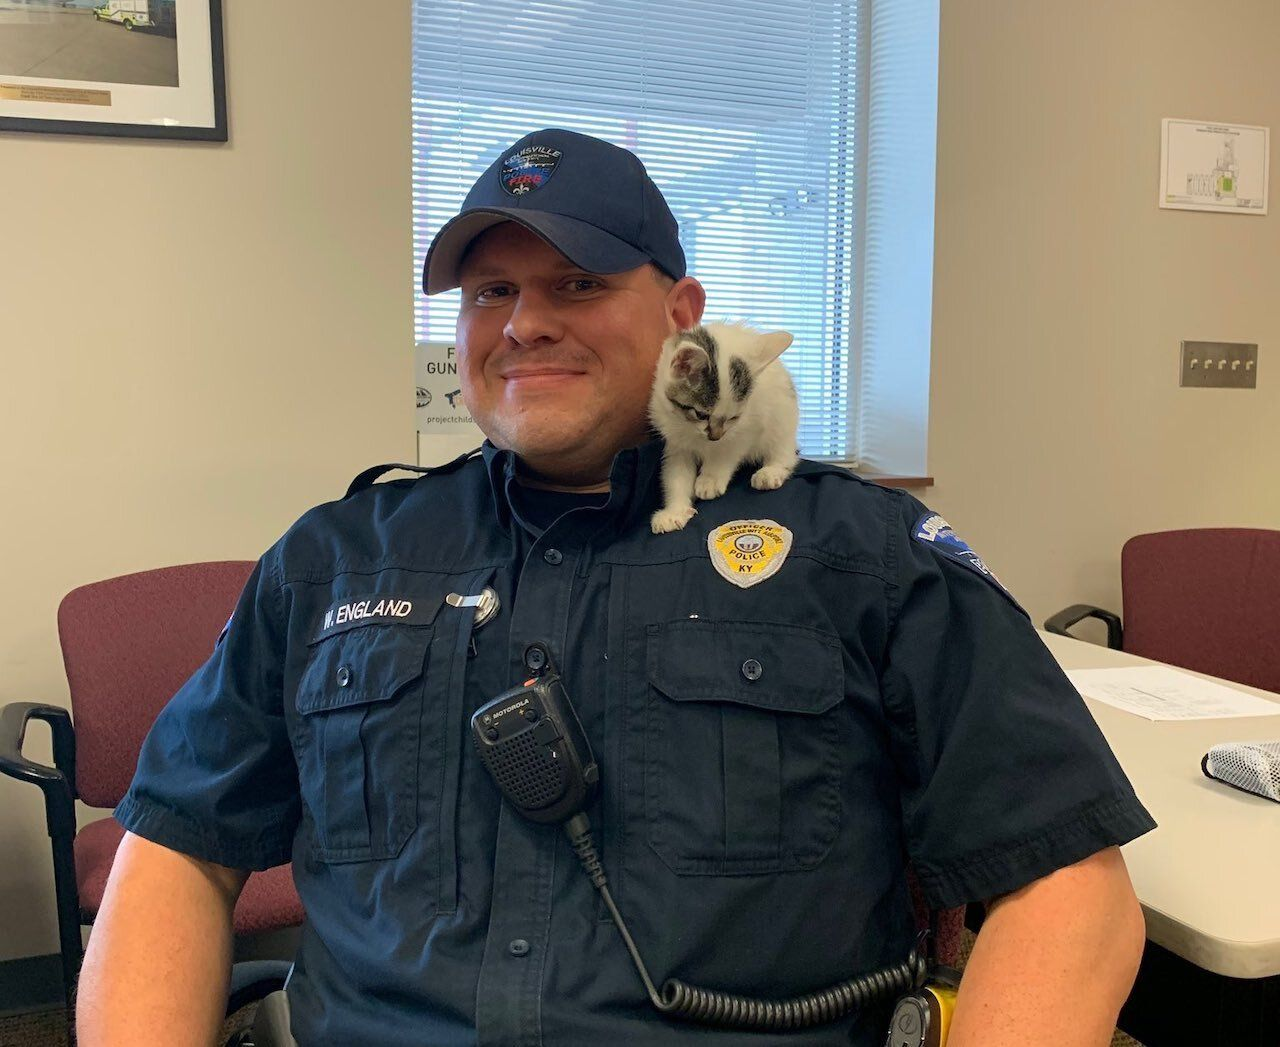 Public Safety Officer Wed England adopted a kitten rescued from Louisville airport